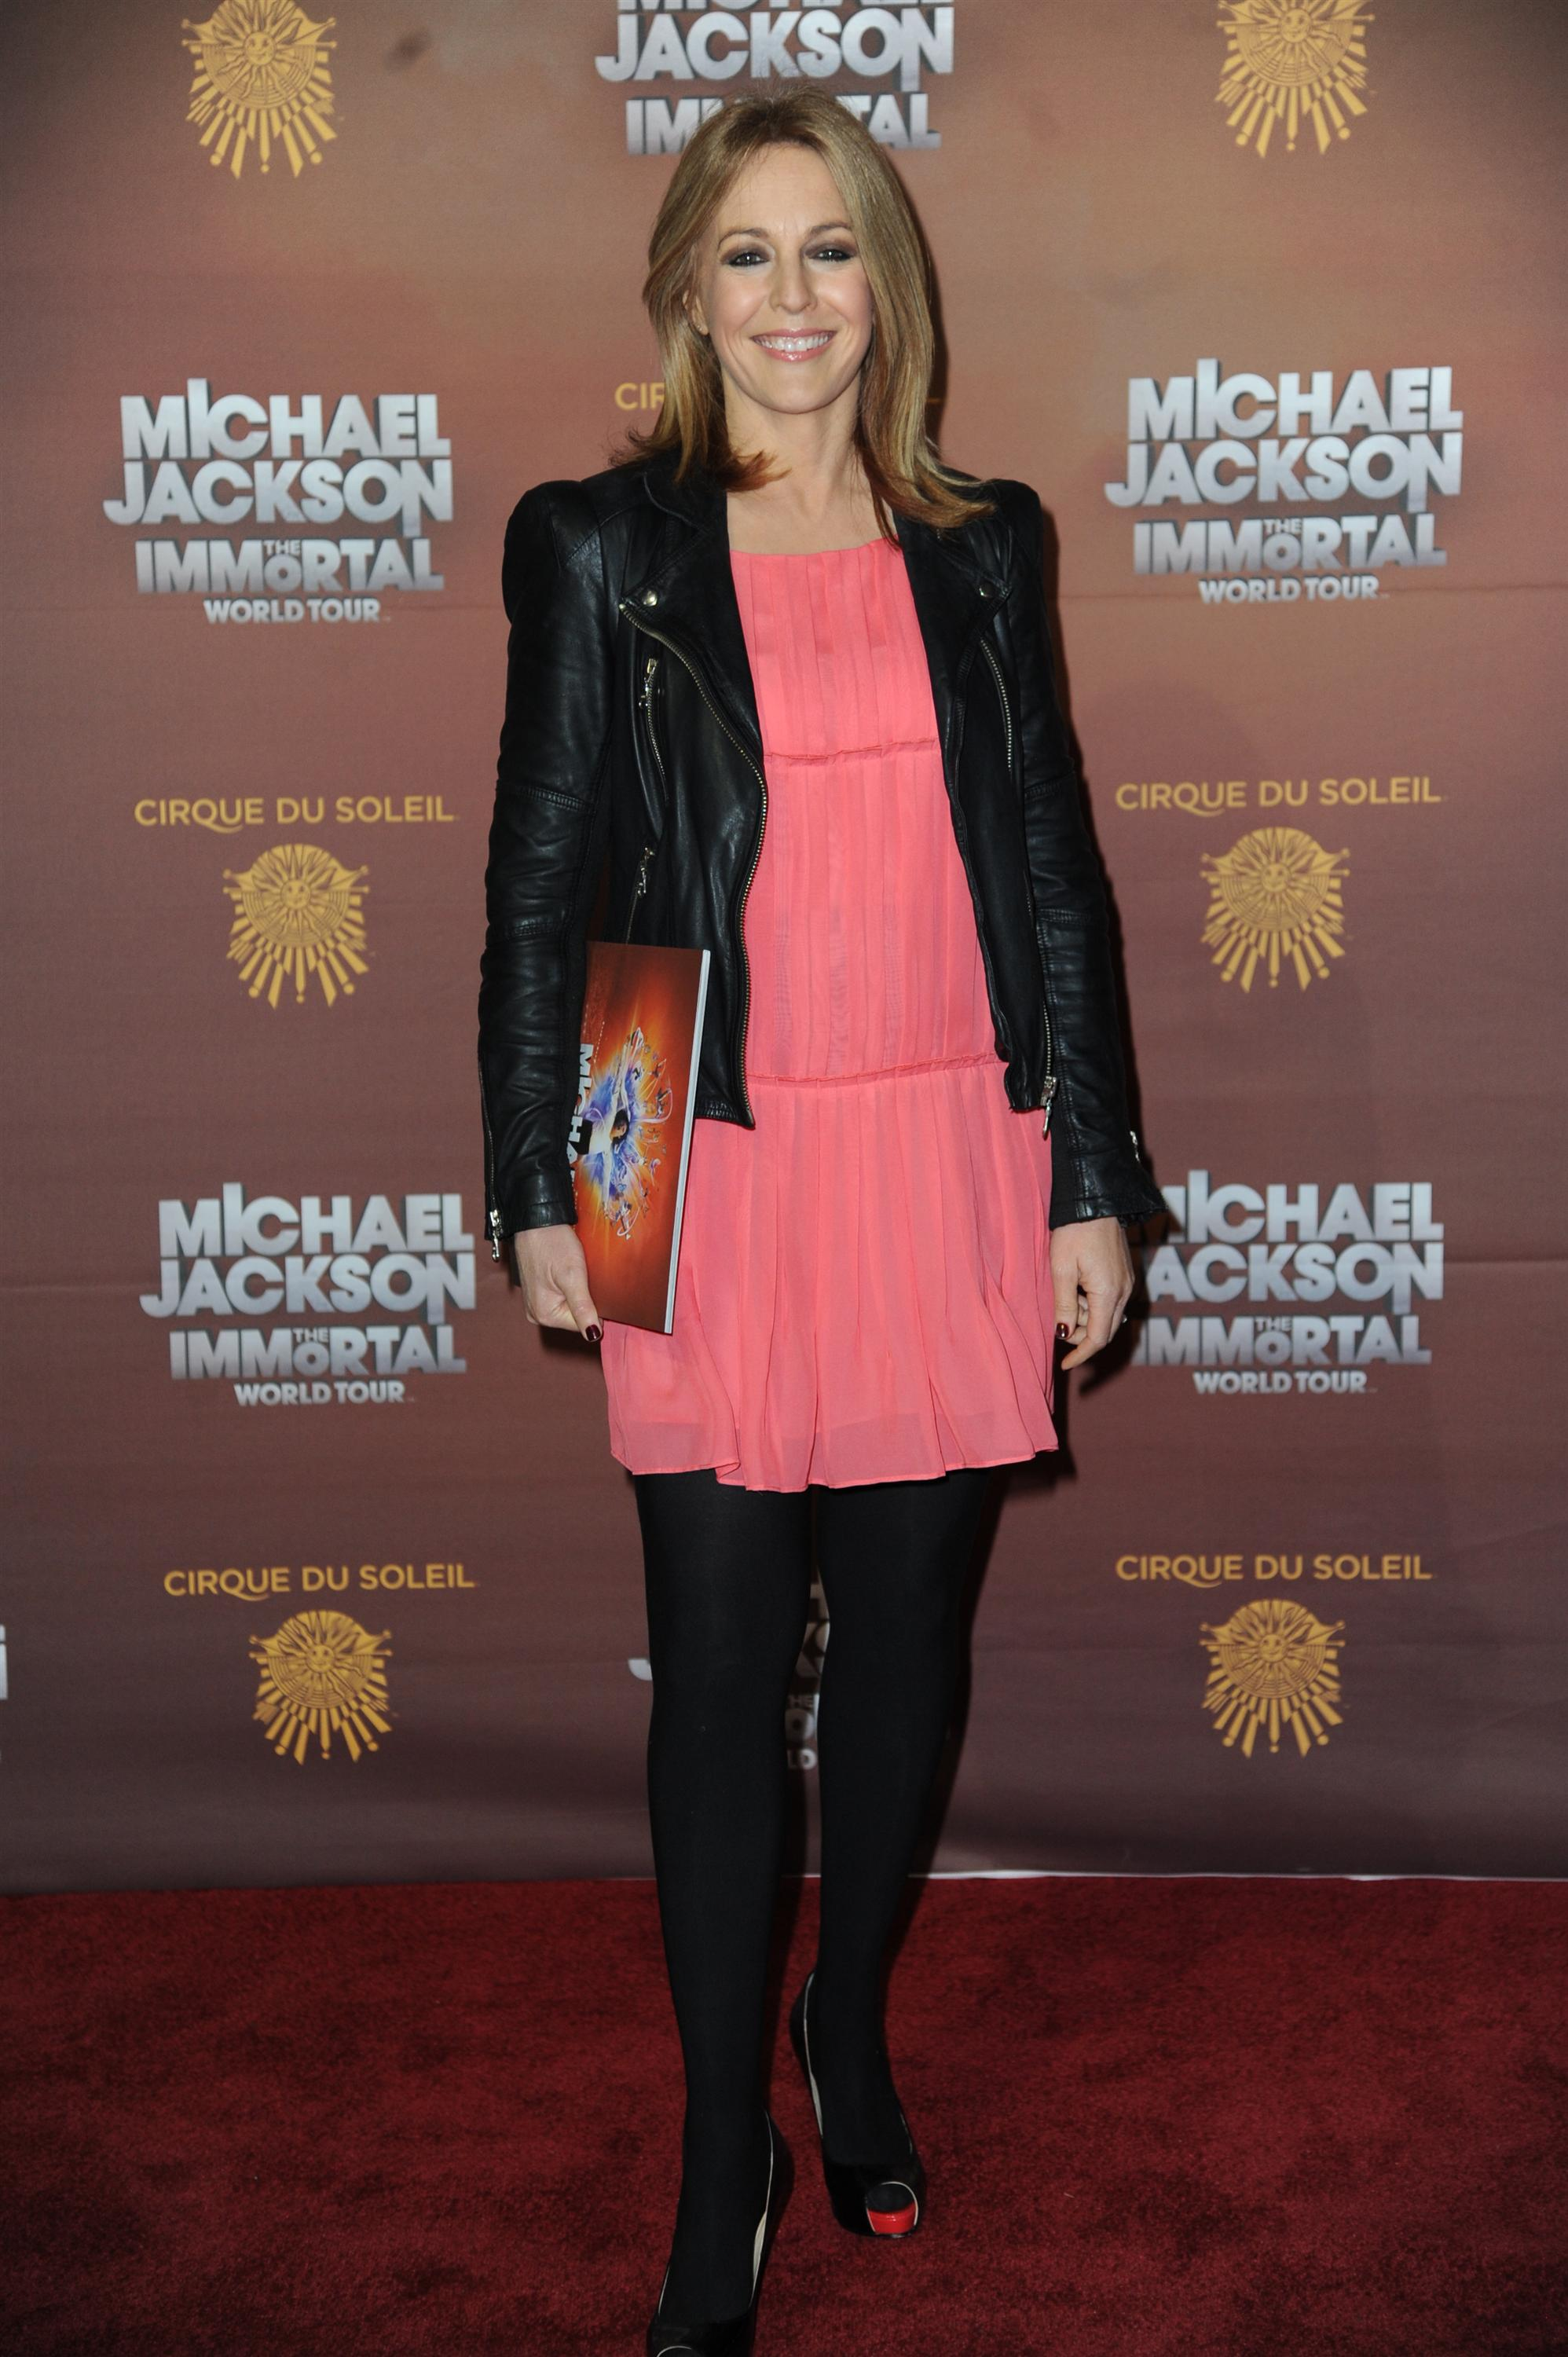 Helen Fospero  Michael Jackson The Immortal World Tour  European Premiere in London - October 12, 2012.